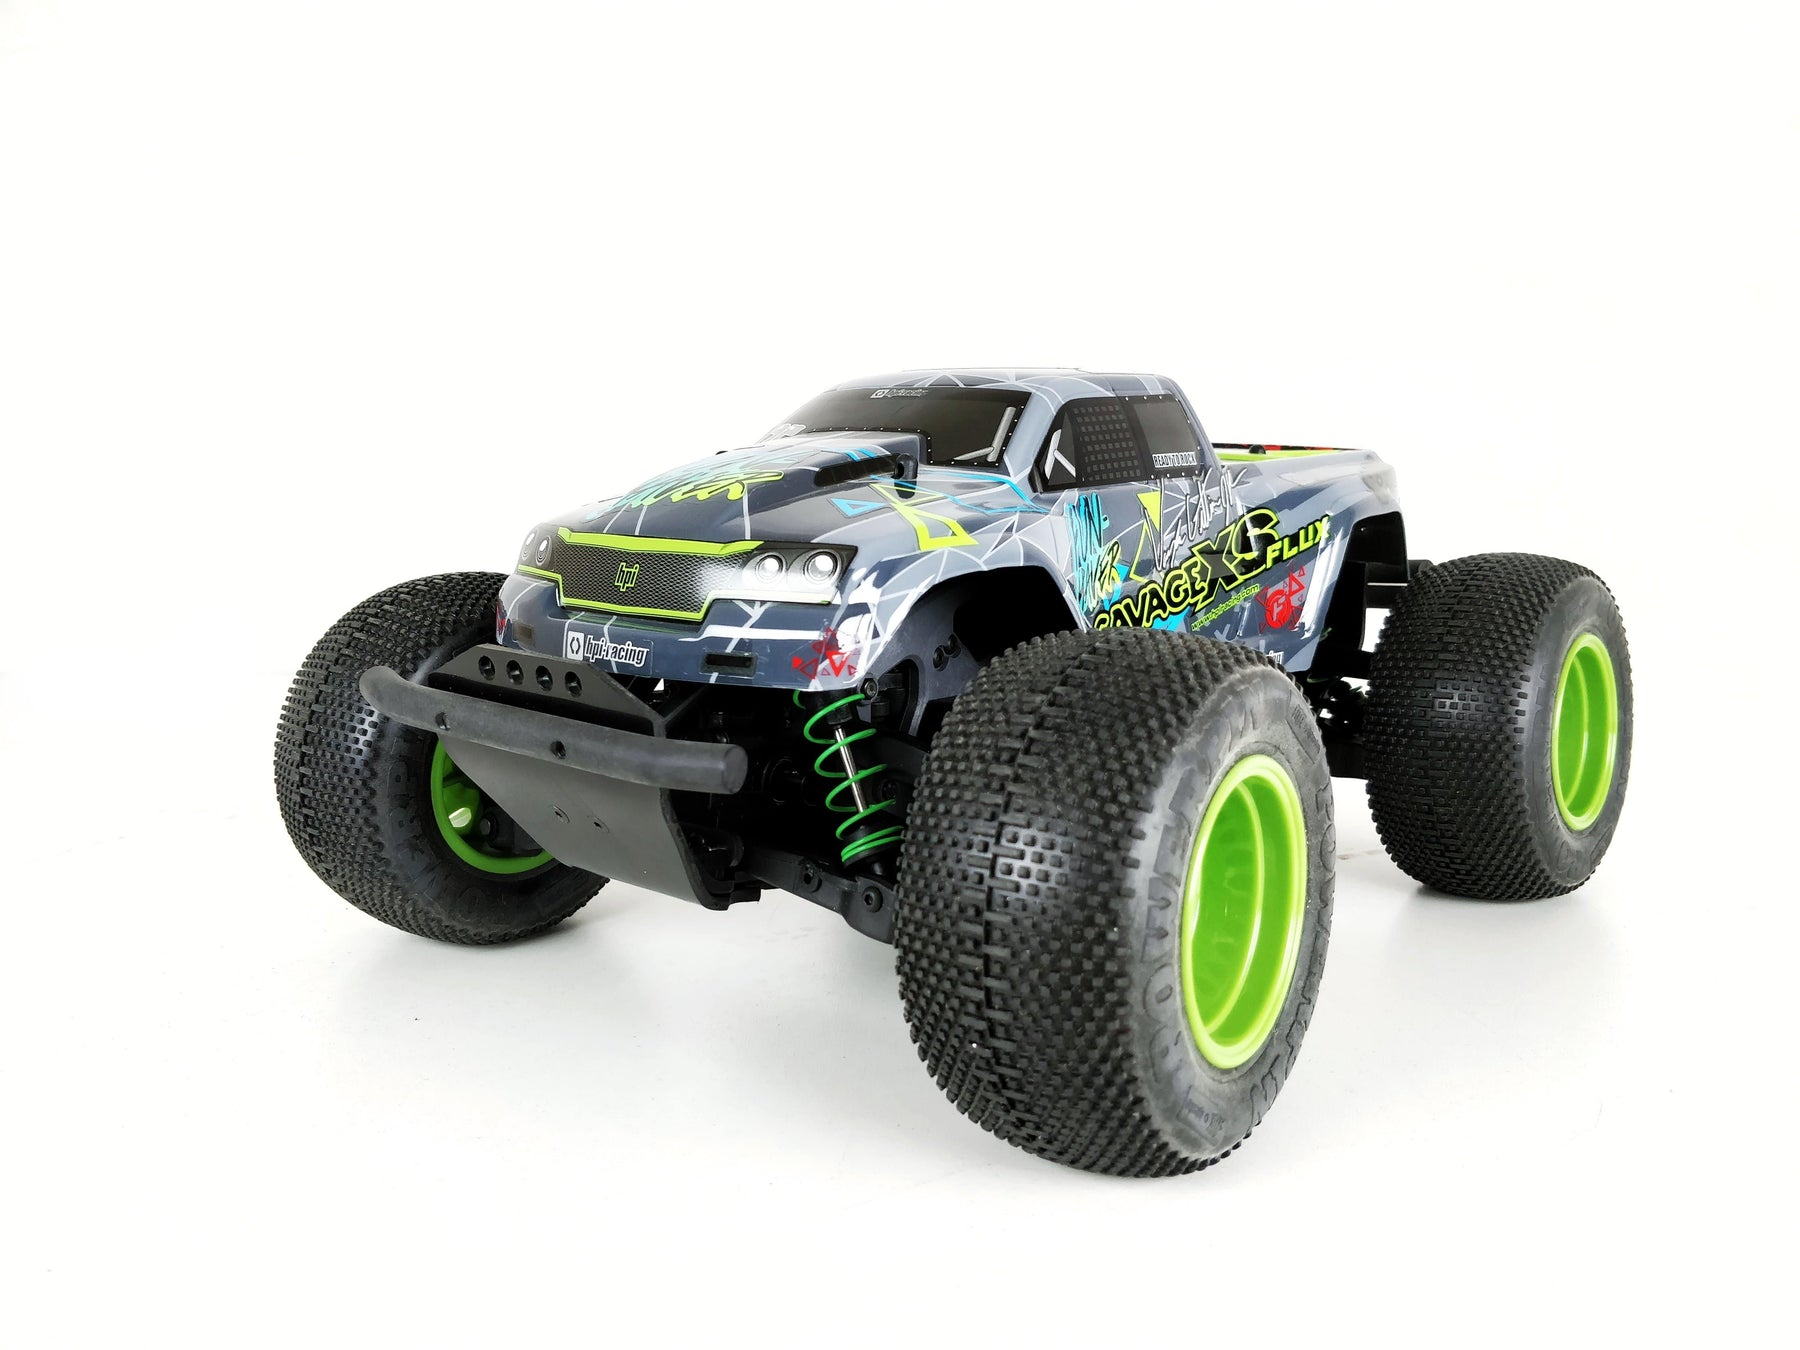 20112 - TBR Full Armor Set - XV6 Front, Chassis Skid, XV4 Rear - HPI Savage XS Flux